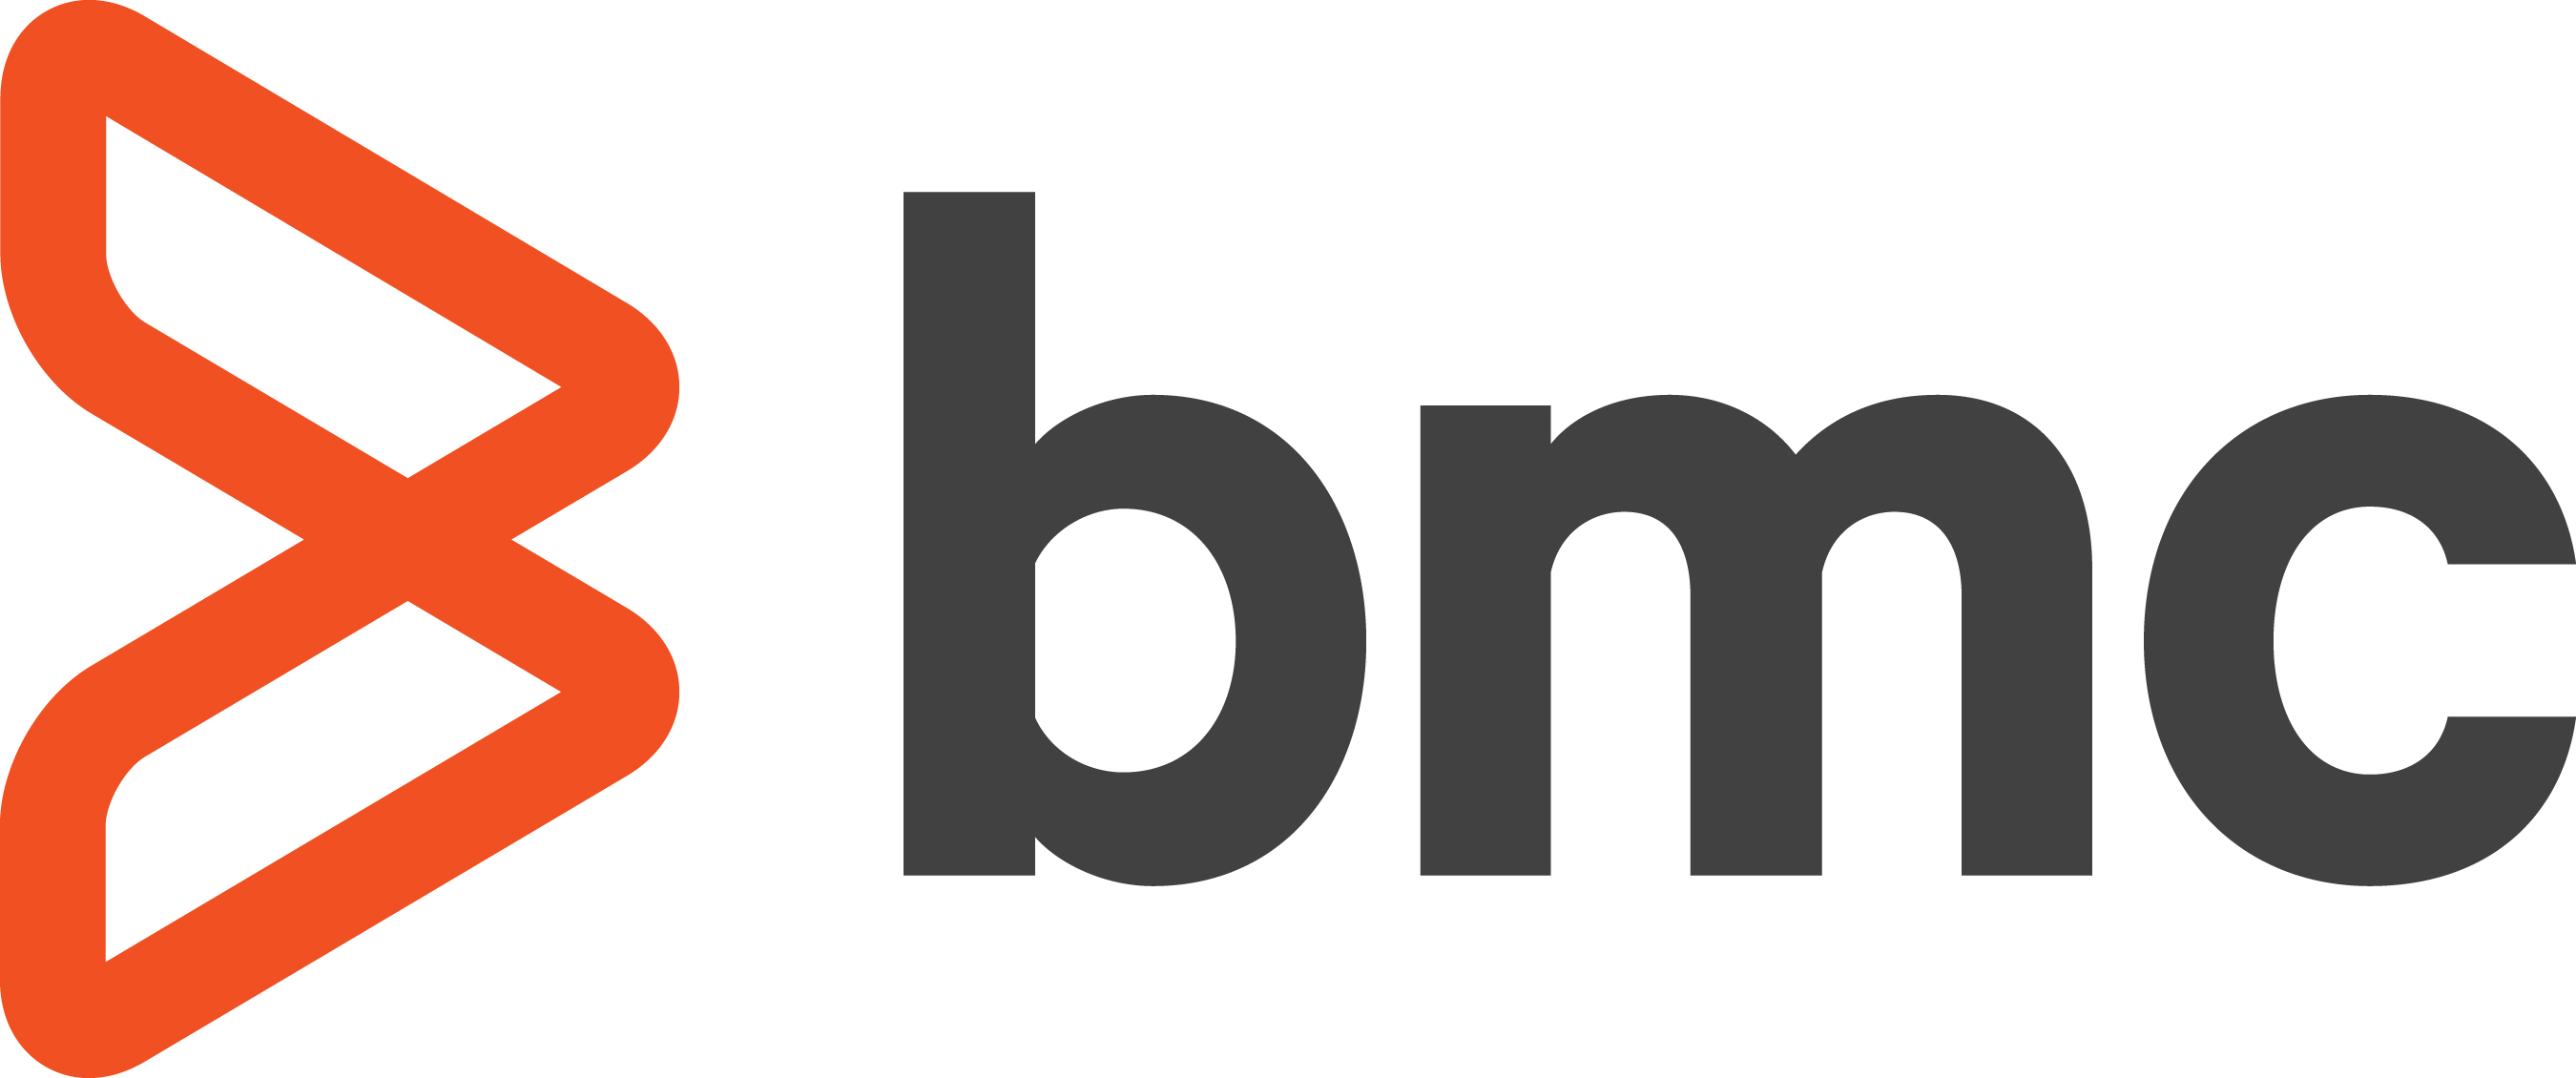 BMC the global leader in software solutions for IT